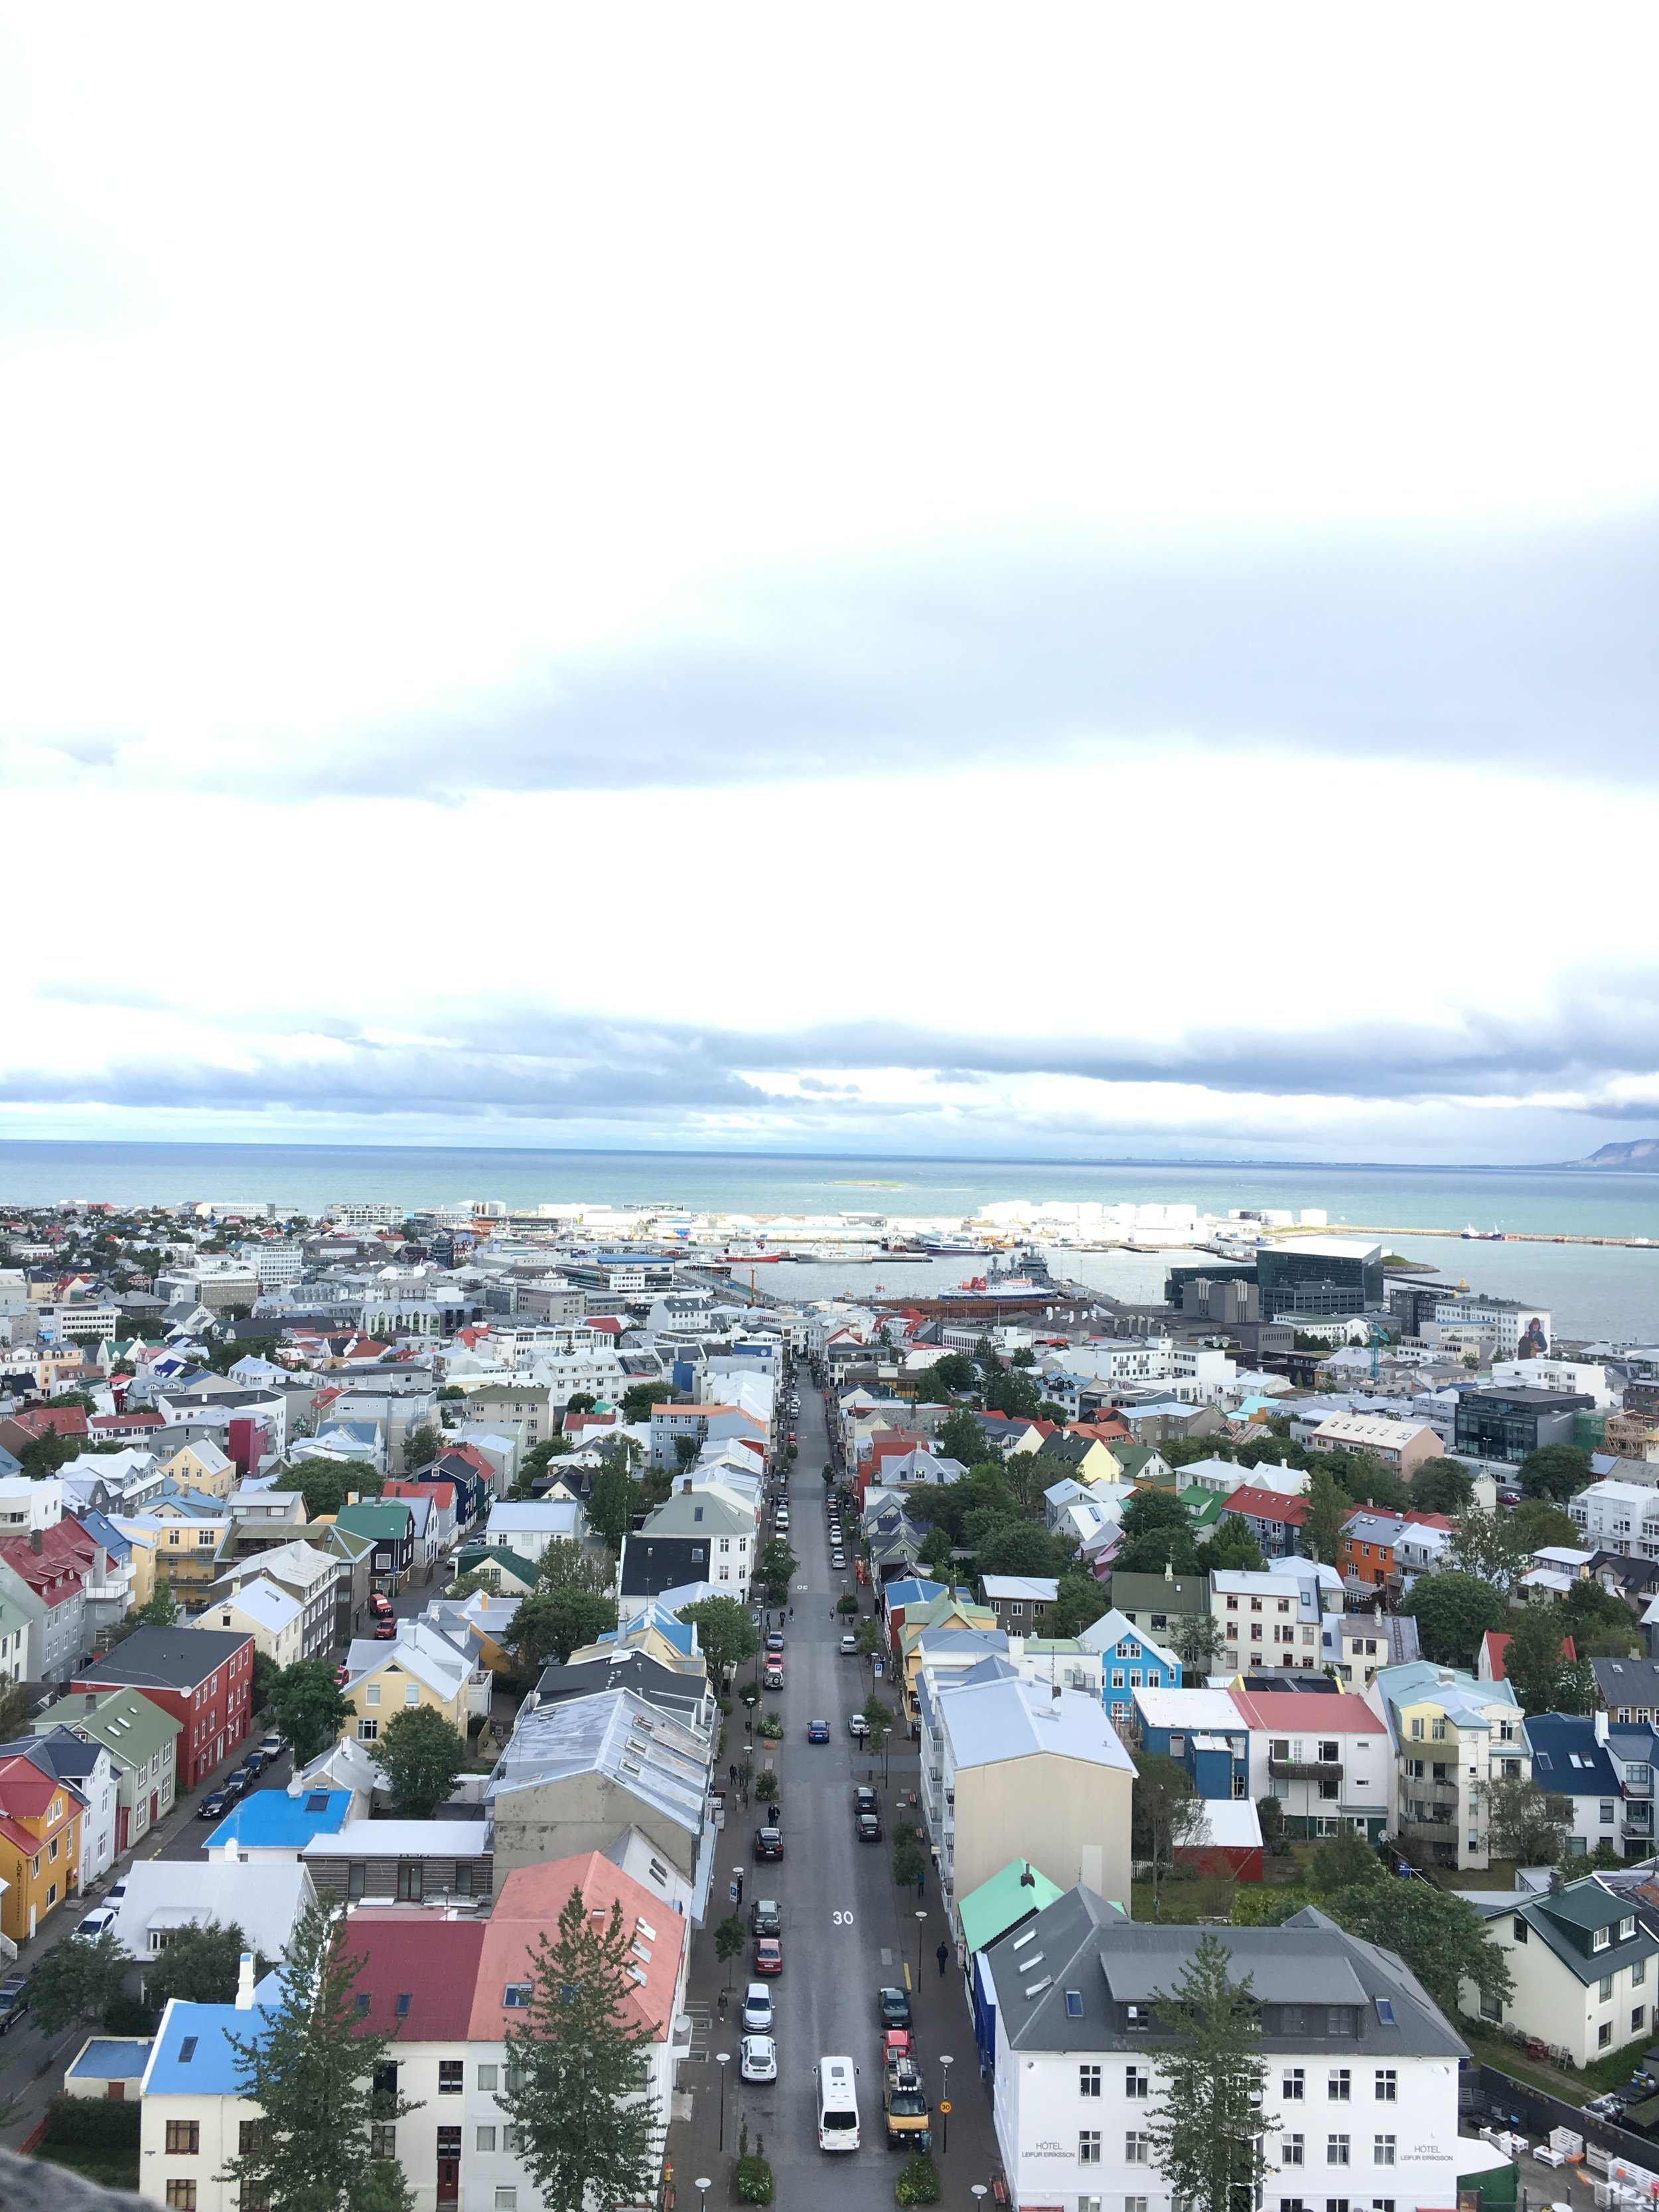 The famous view from atop Hallgrímskirkja church